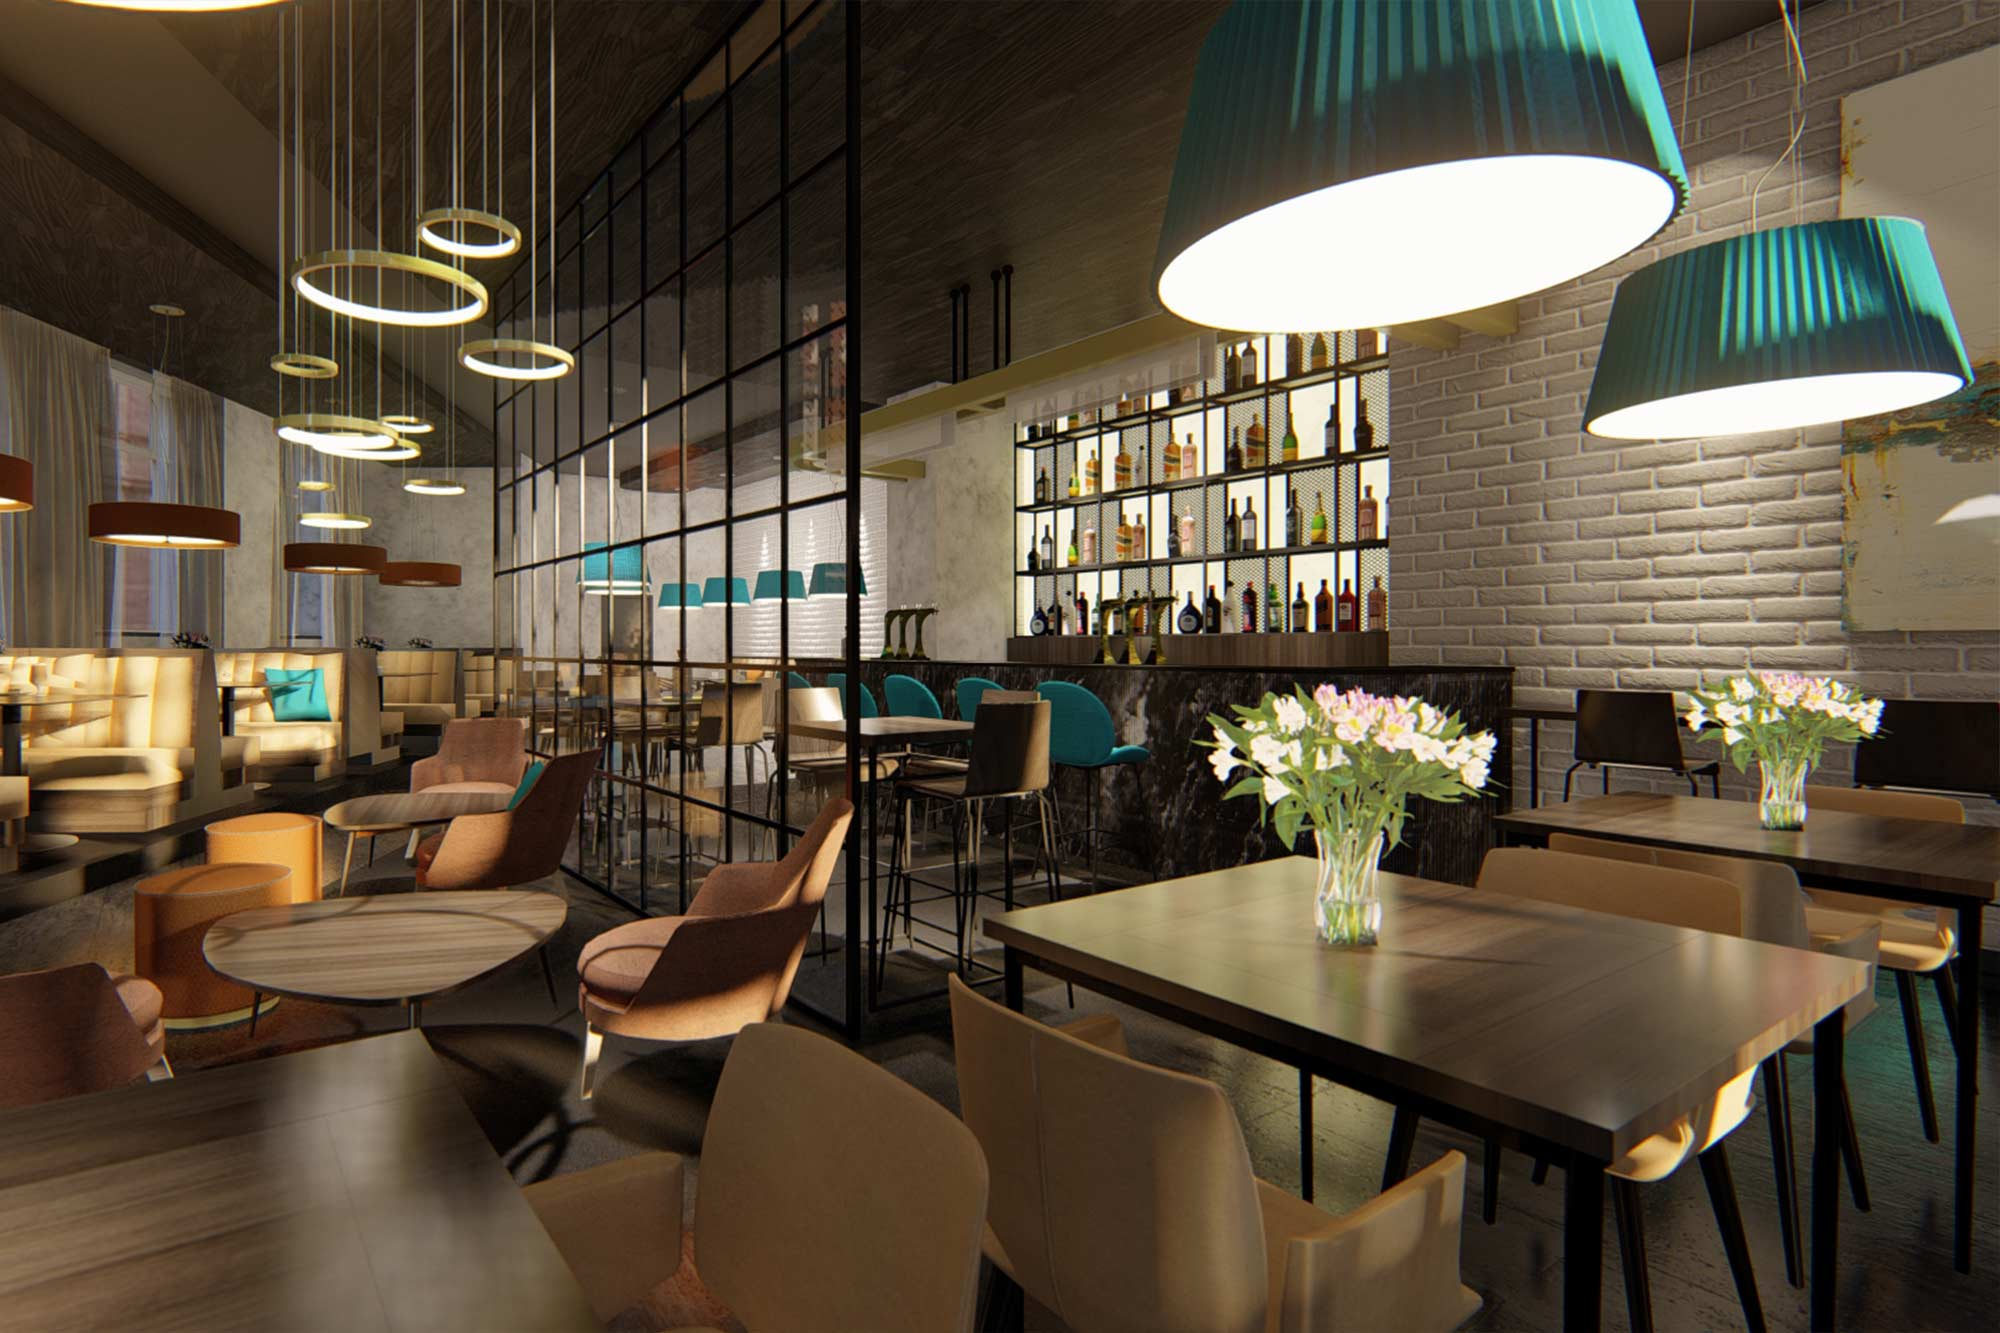 Bank conversion into stylish restaurant interior design architectural visualisations in Blackpool